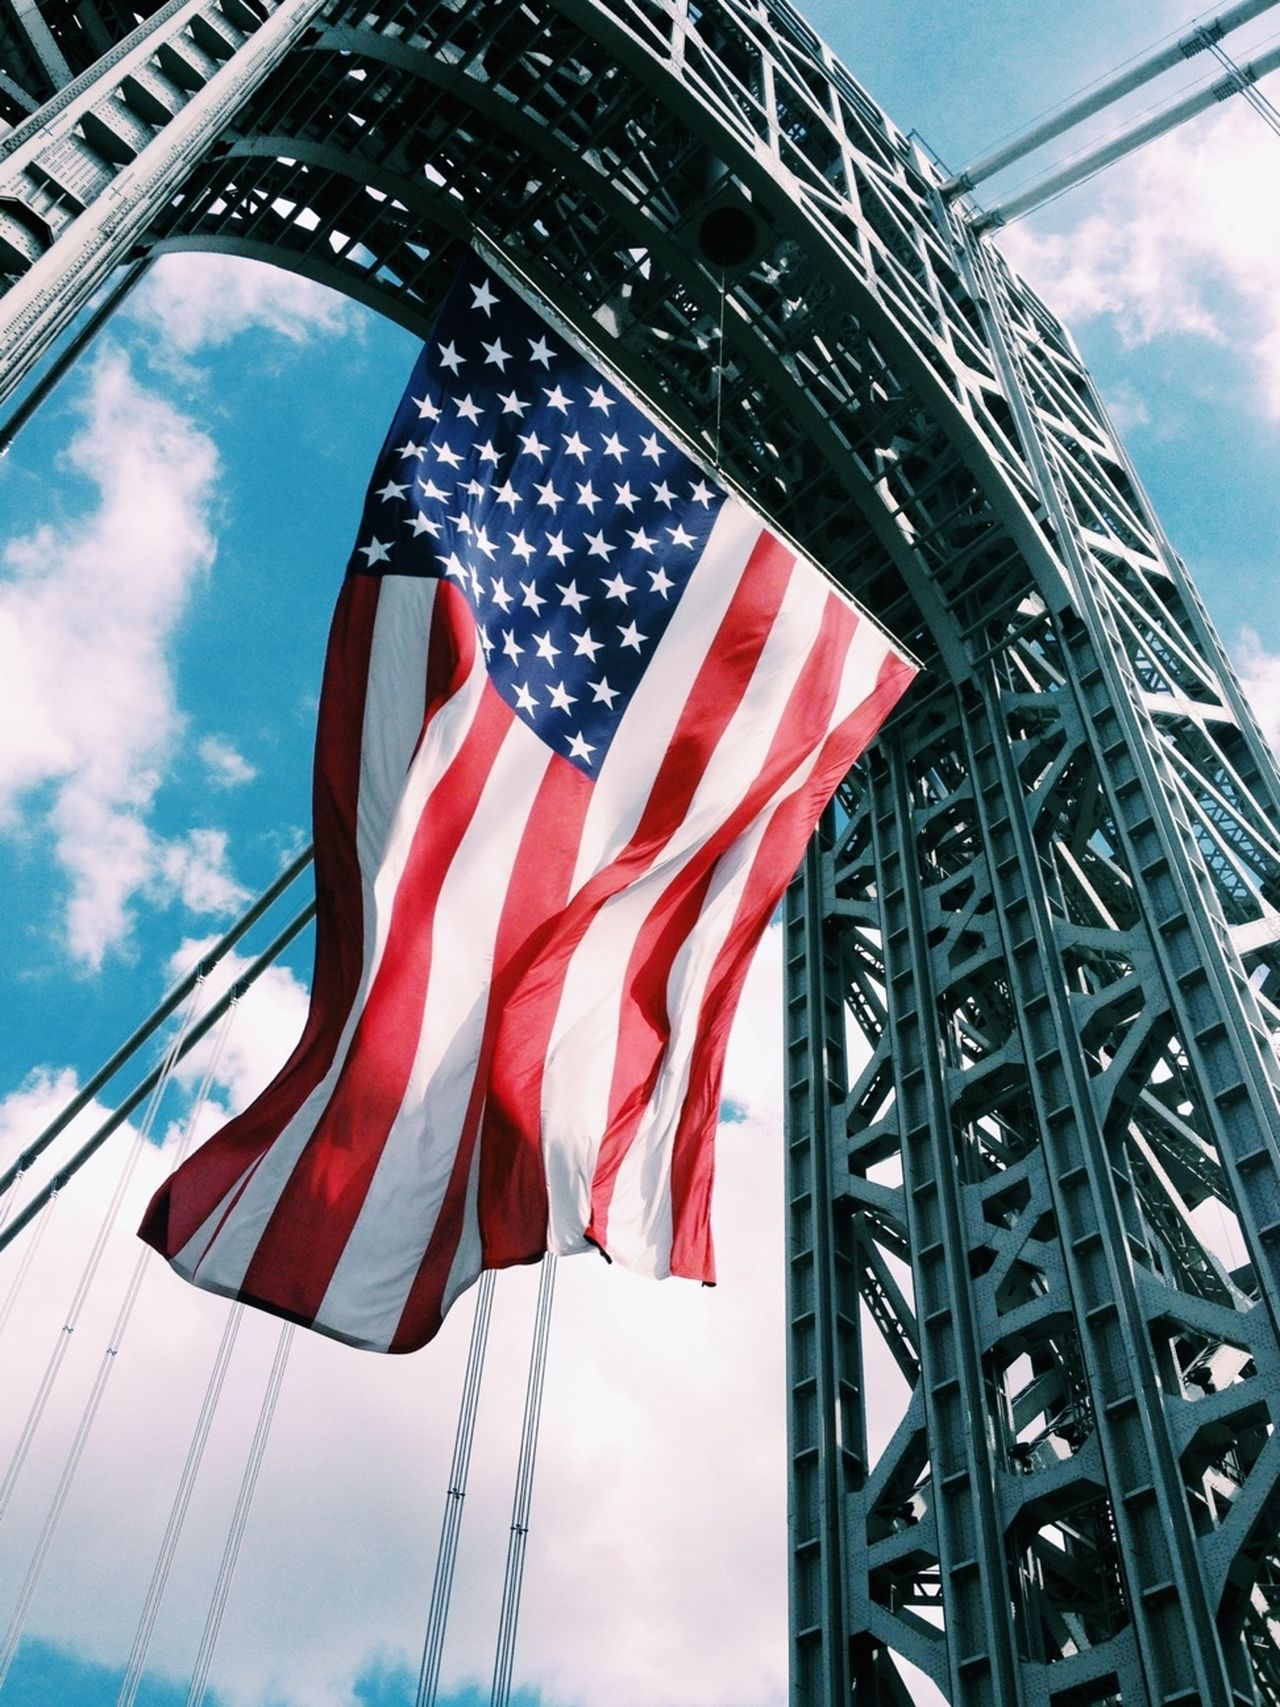 Beautiful stock photos of 4th of july, American Culture, American Flag, Architecture, Built Structure